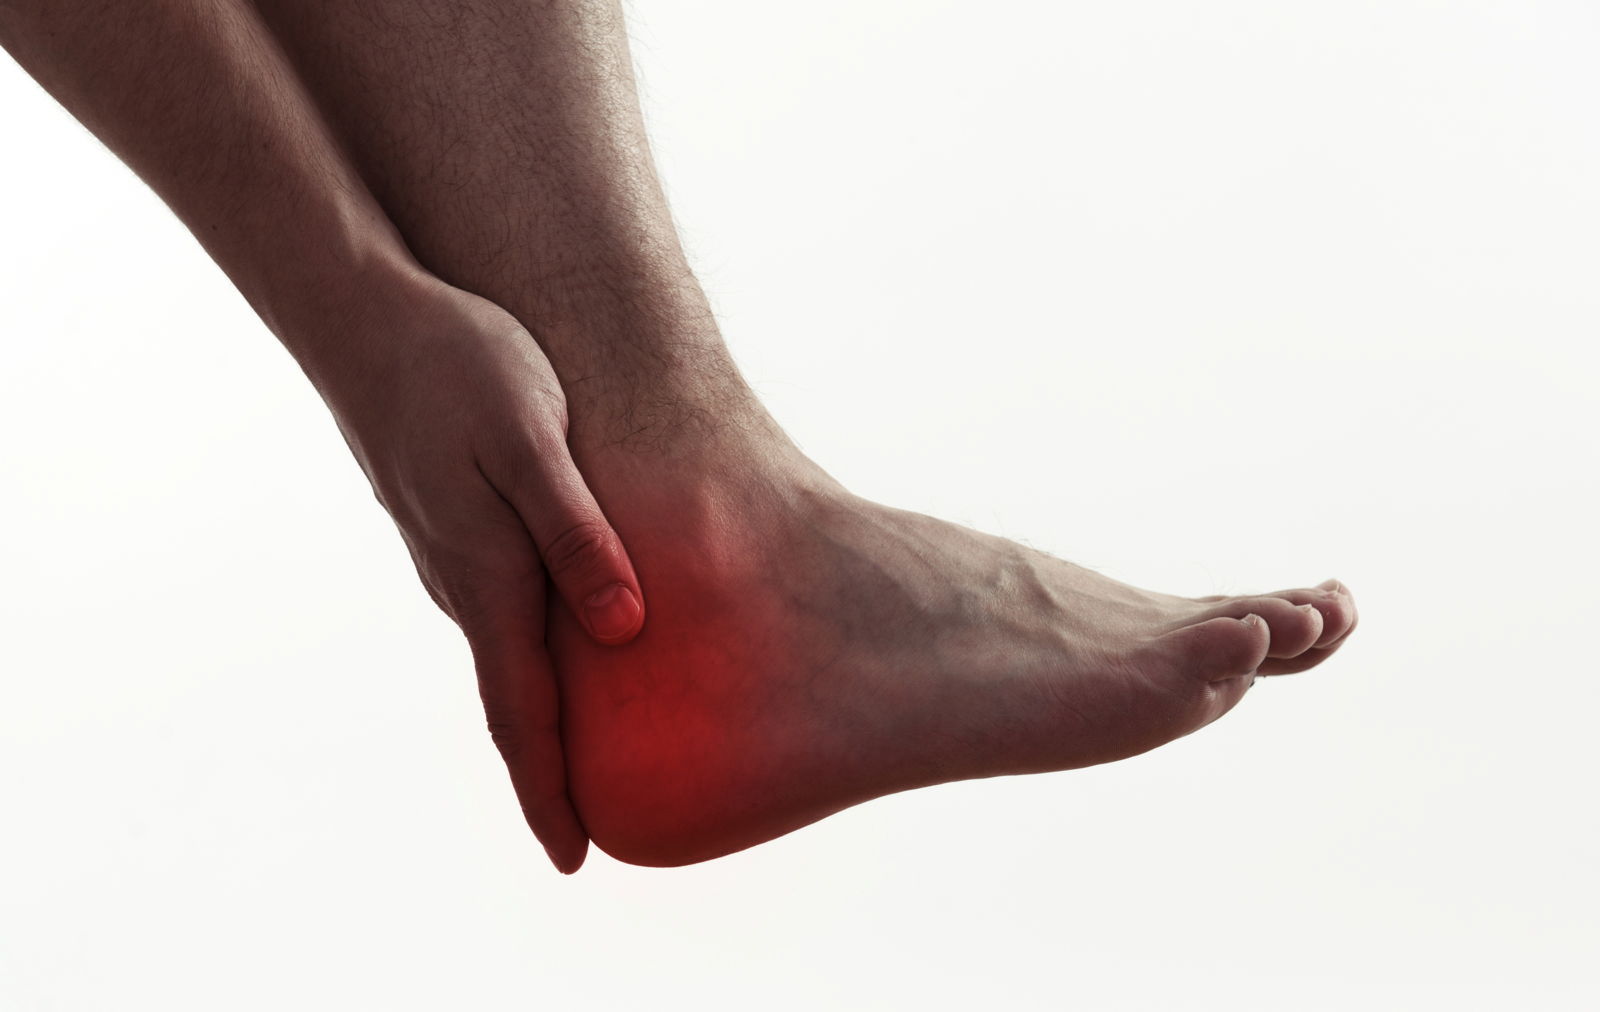 Standing all day can hurt your feet--but proper shoes can help keep the pain at bay